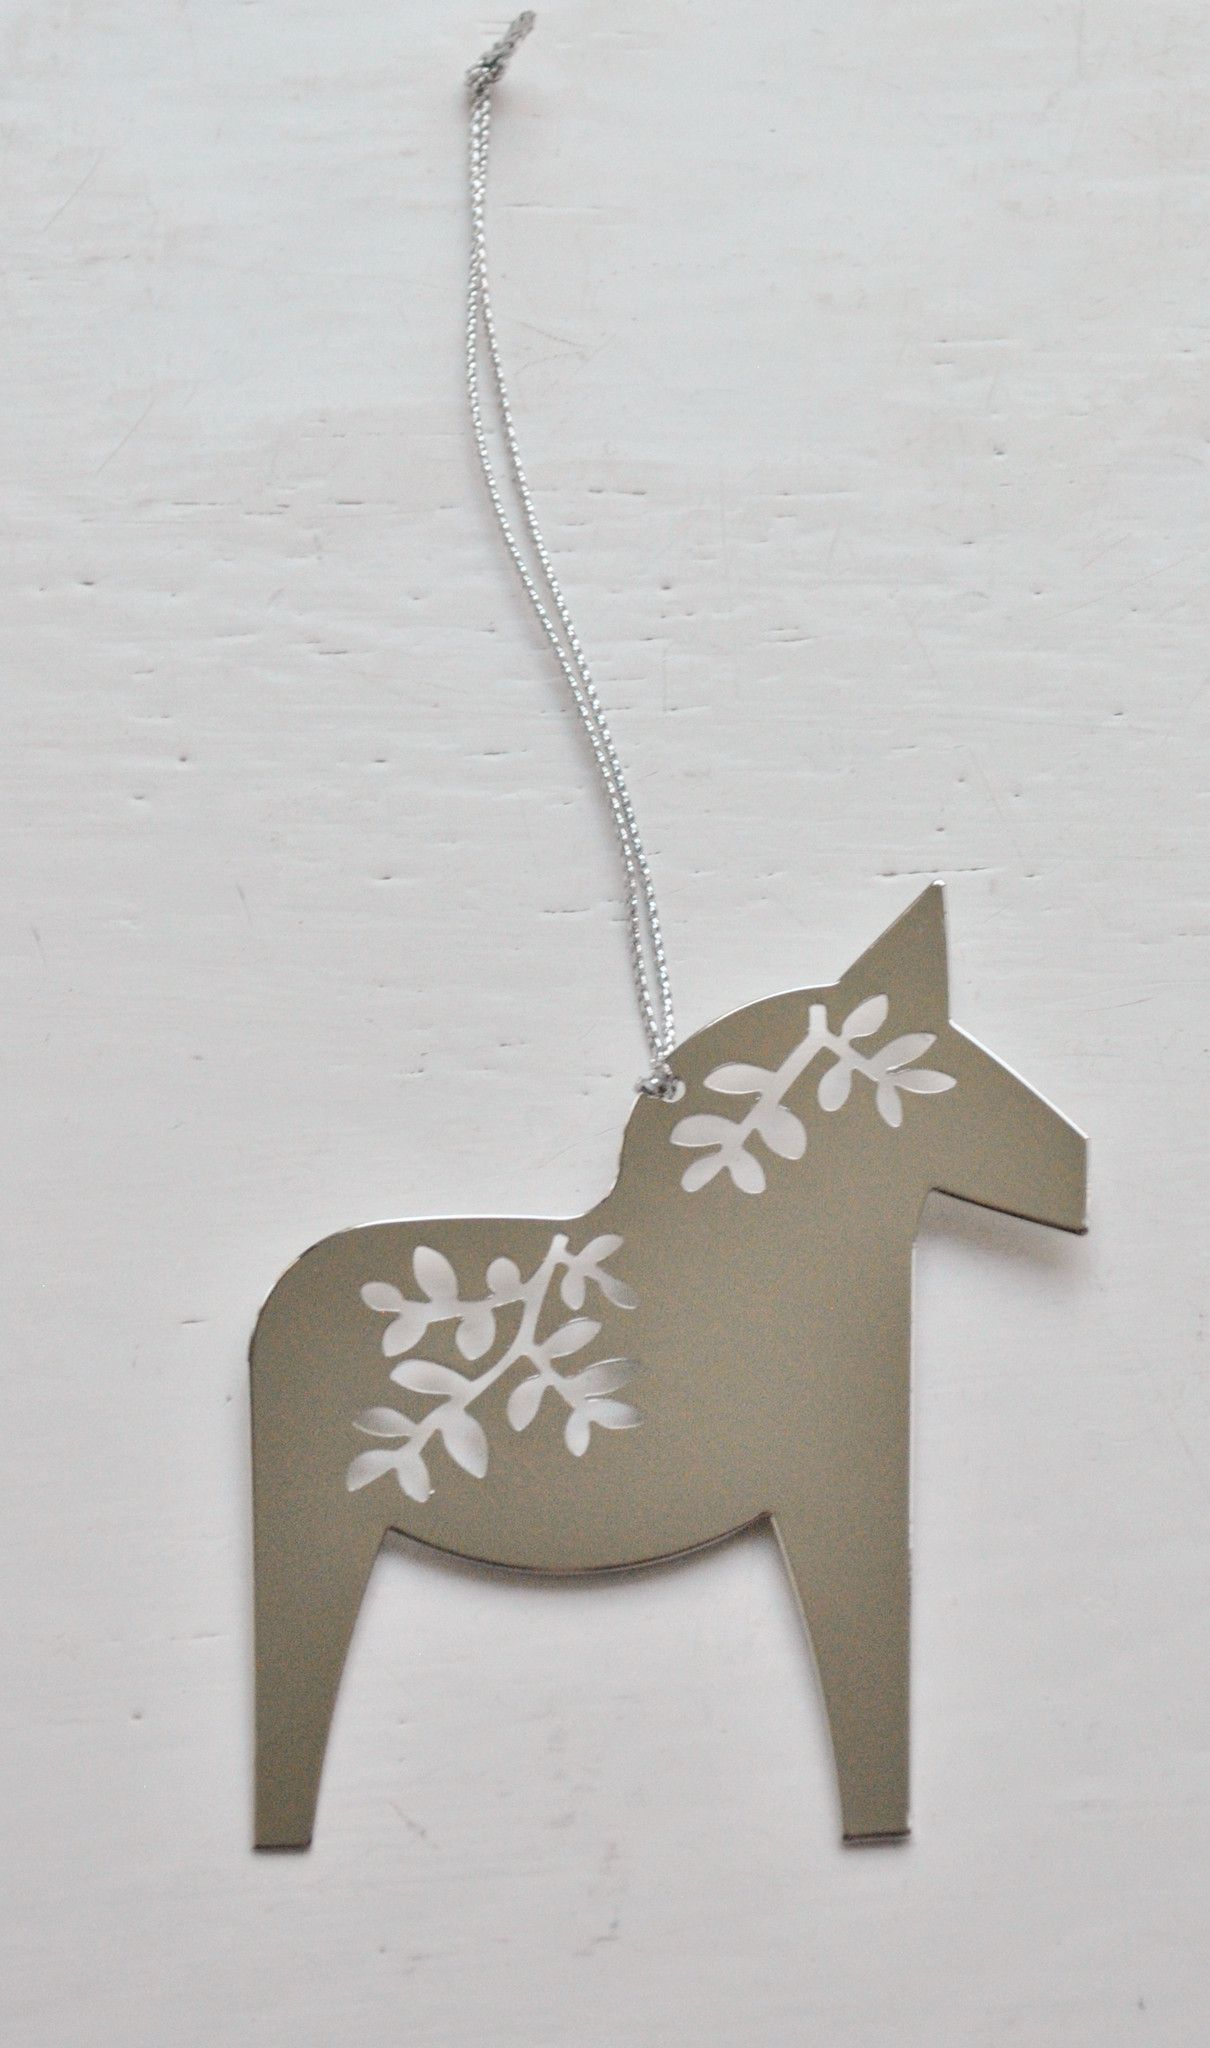 This Is An Adorable Swedish Metal Flat Dala Horse Ornament